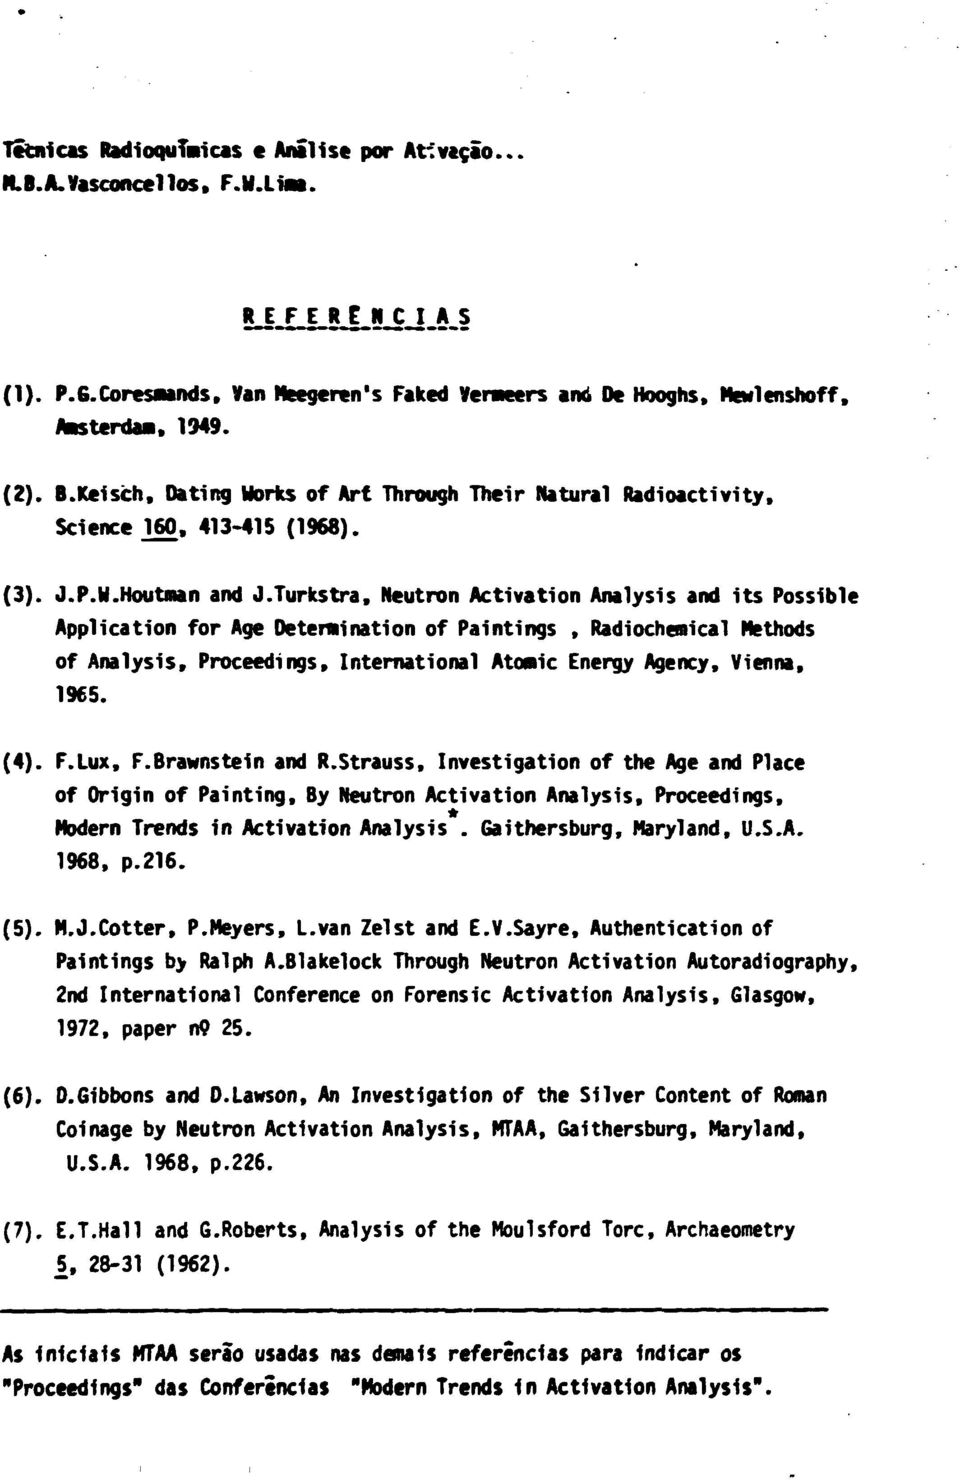 Turkstra, Neutron Activation Analysis and its Possible Application for Age Determination of Paintings, Radiochenical Methods of Analysis, Proceedings, International Atomic Energy Agency, Vienna, 1965.